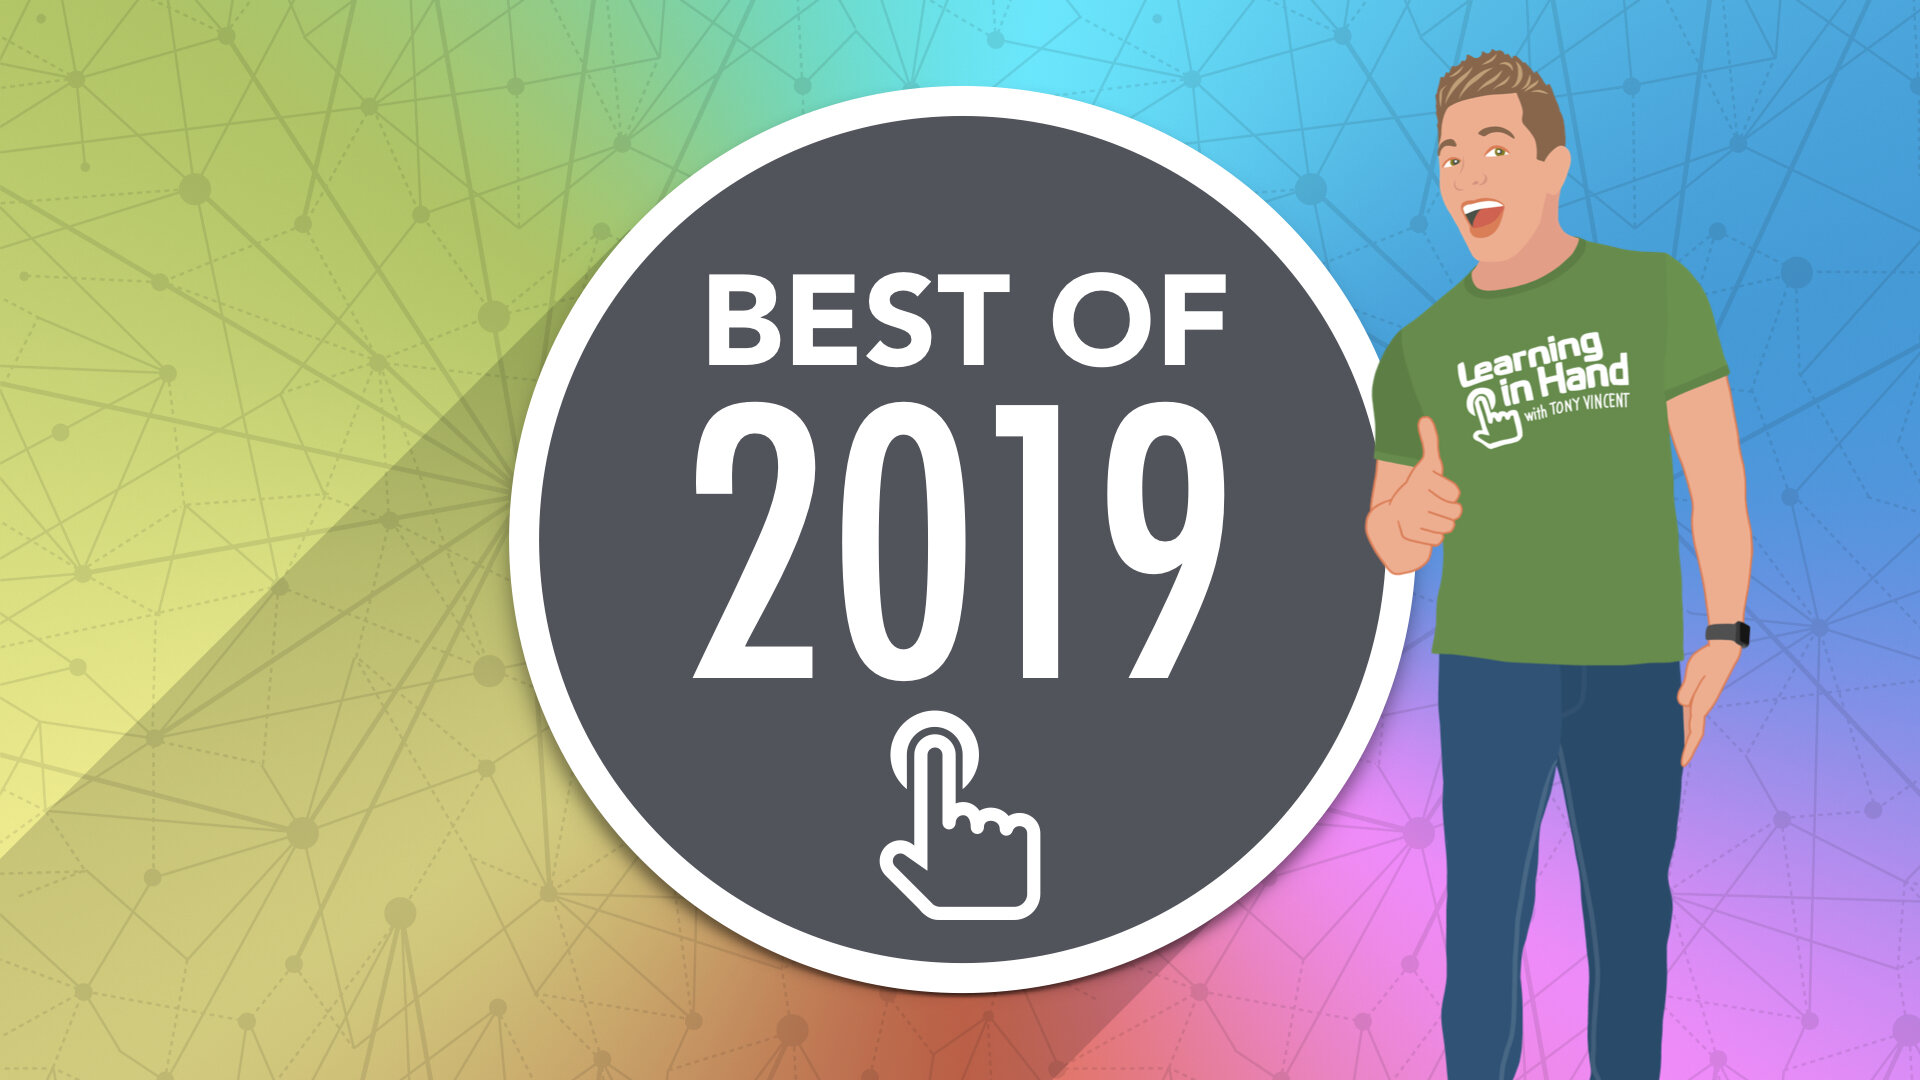 Top Tweets and Instagram Posts from 2019